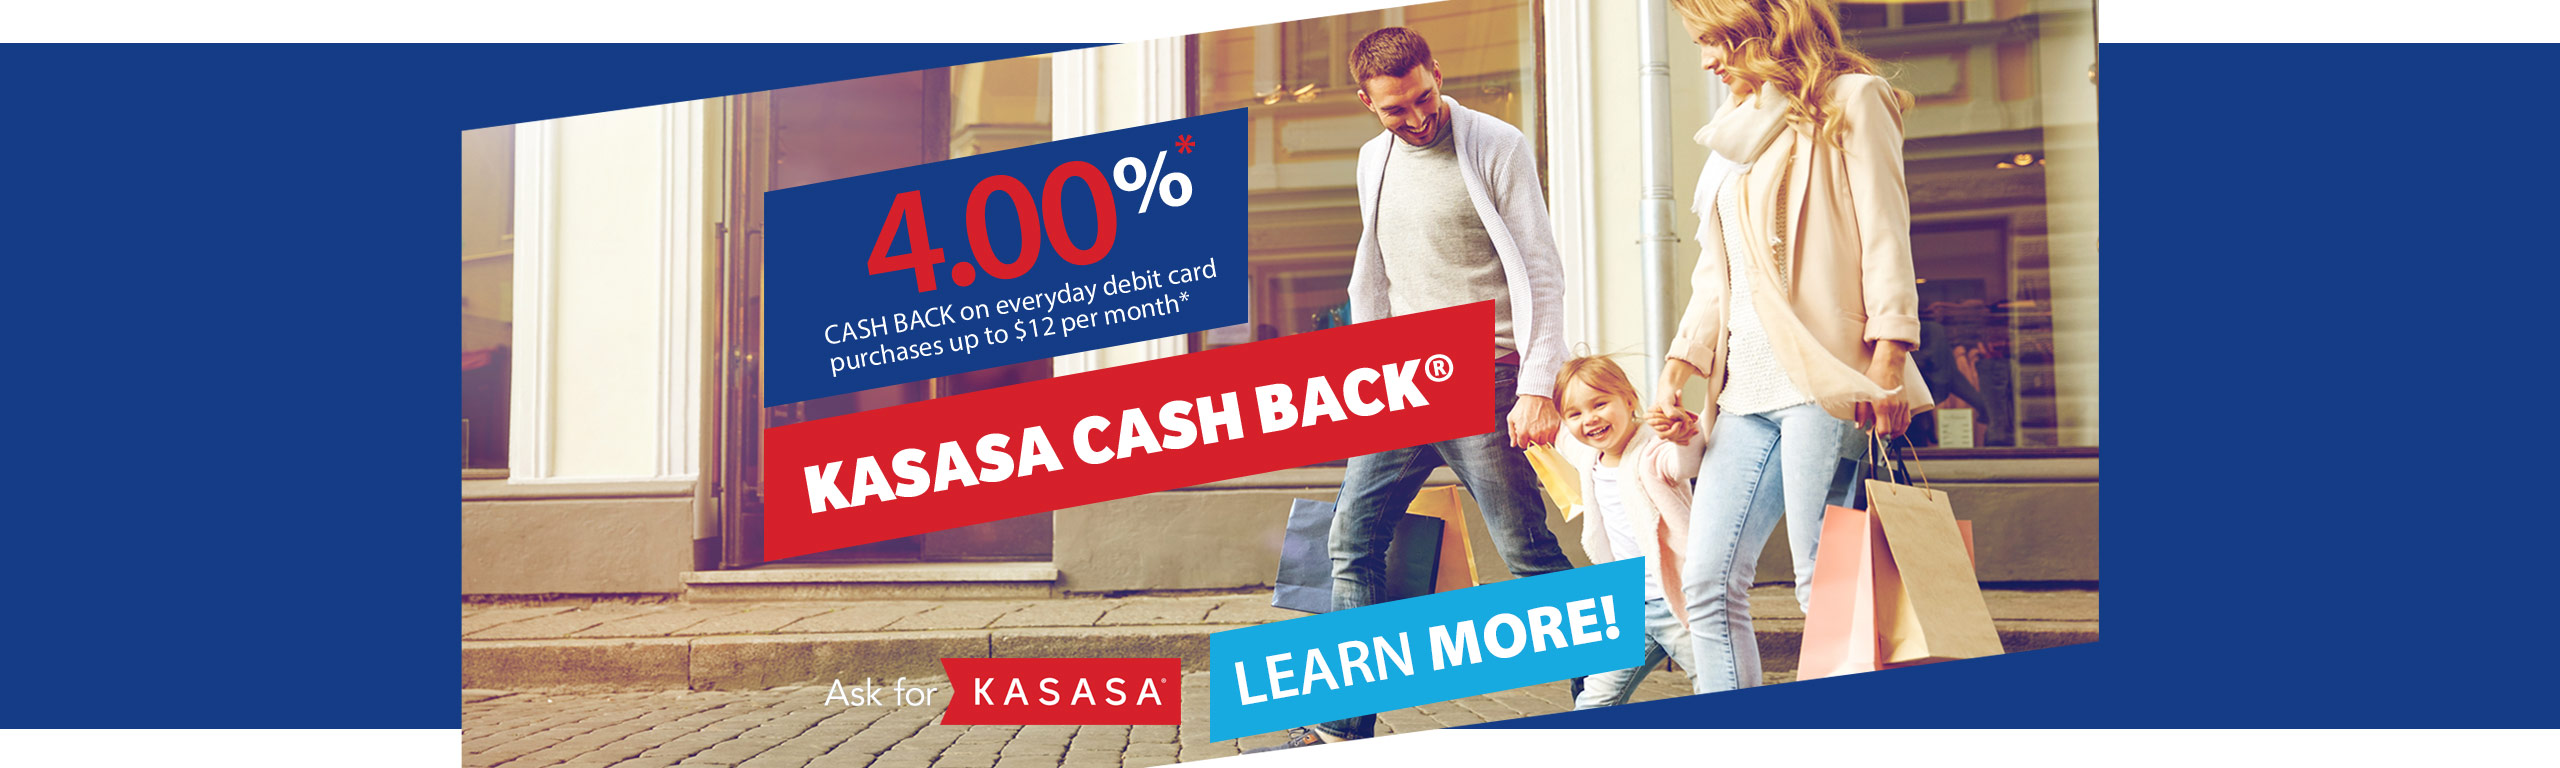 Kasasa Cash Back - Earn 4.00%* Cash back on everyday debit card purchases up to $12 per month. Learn more!